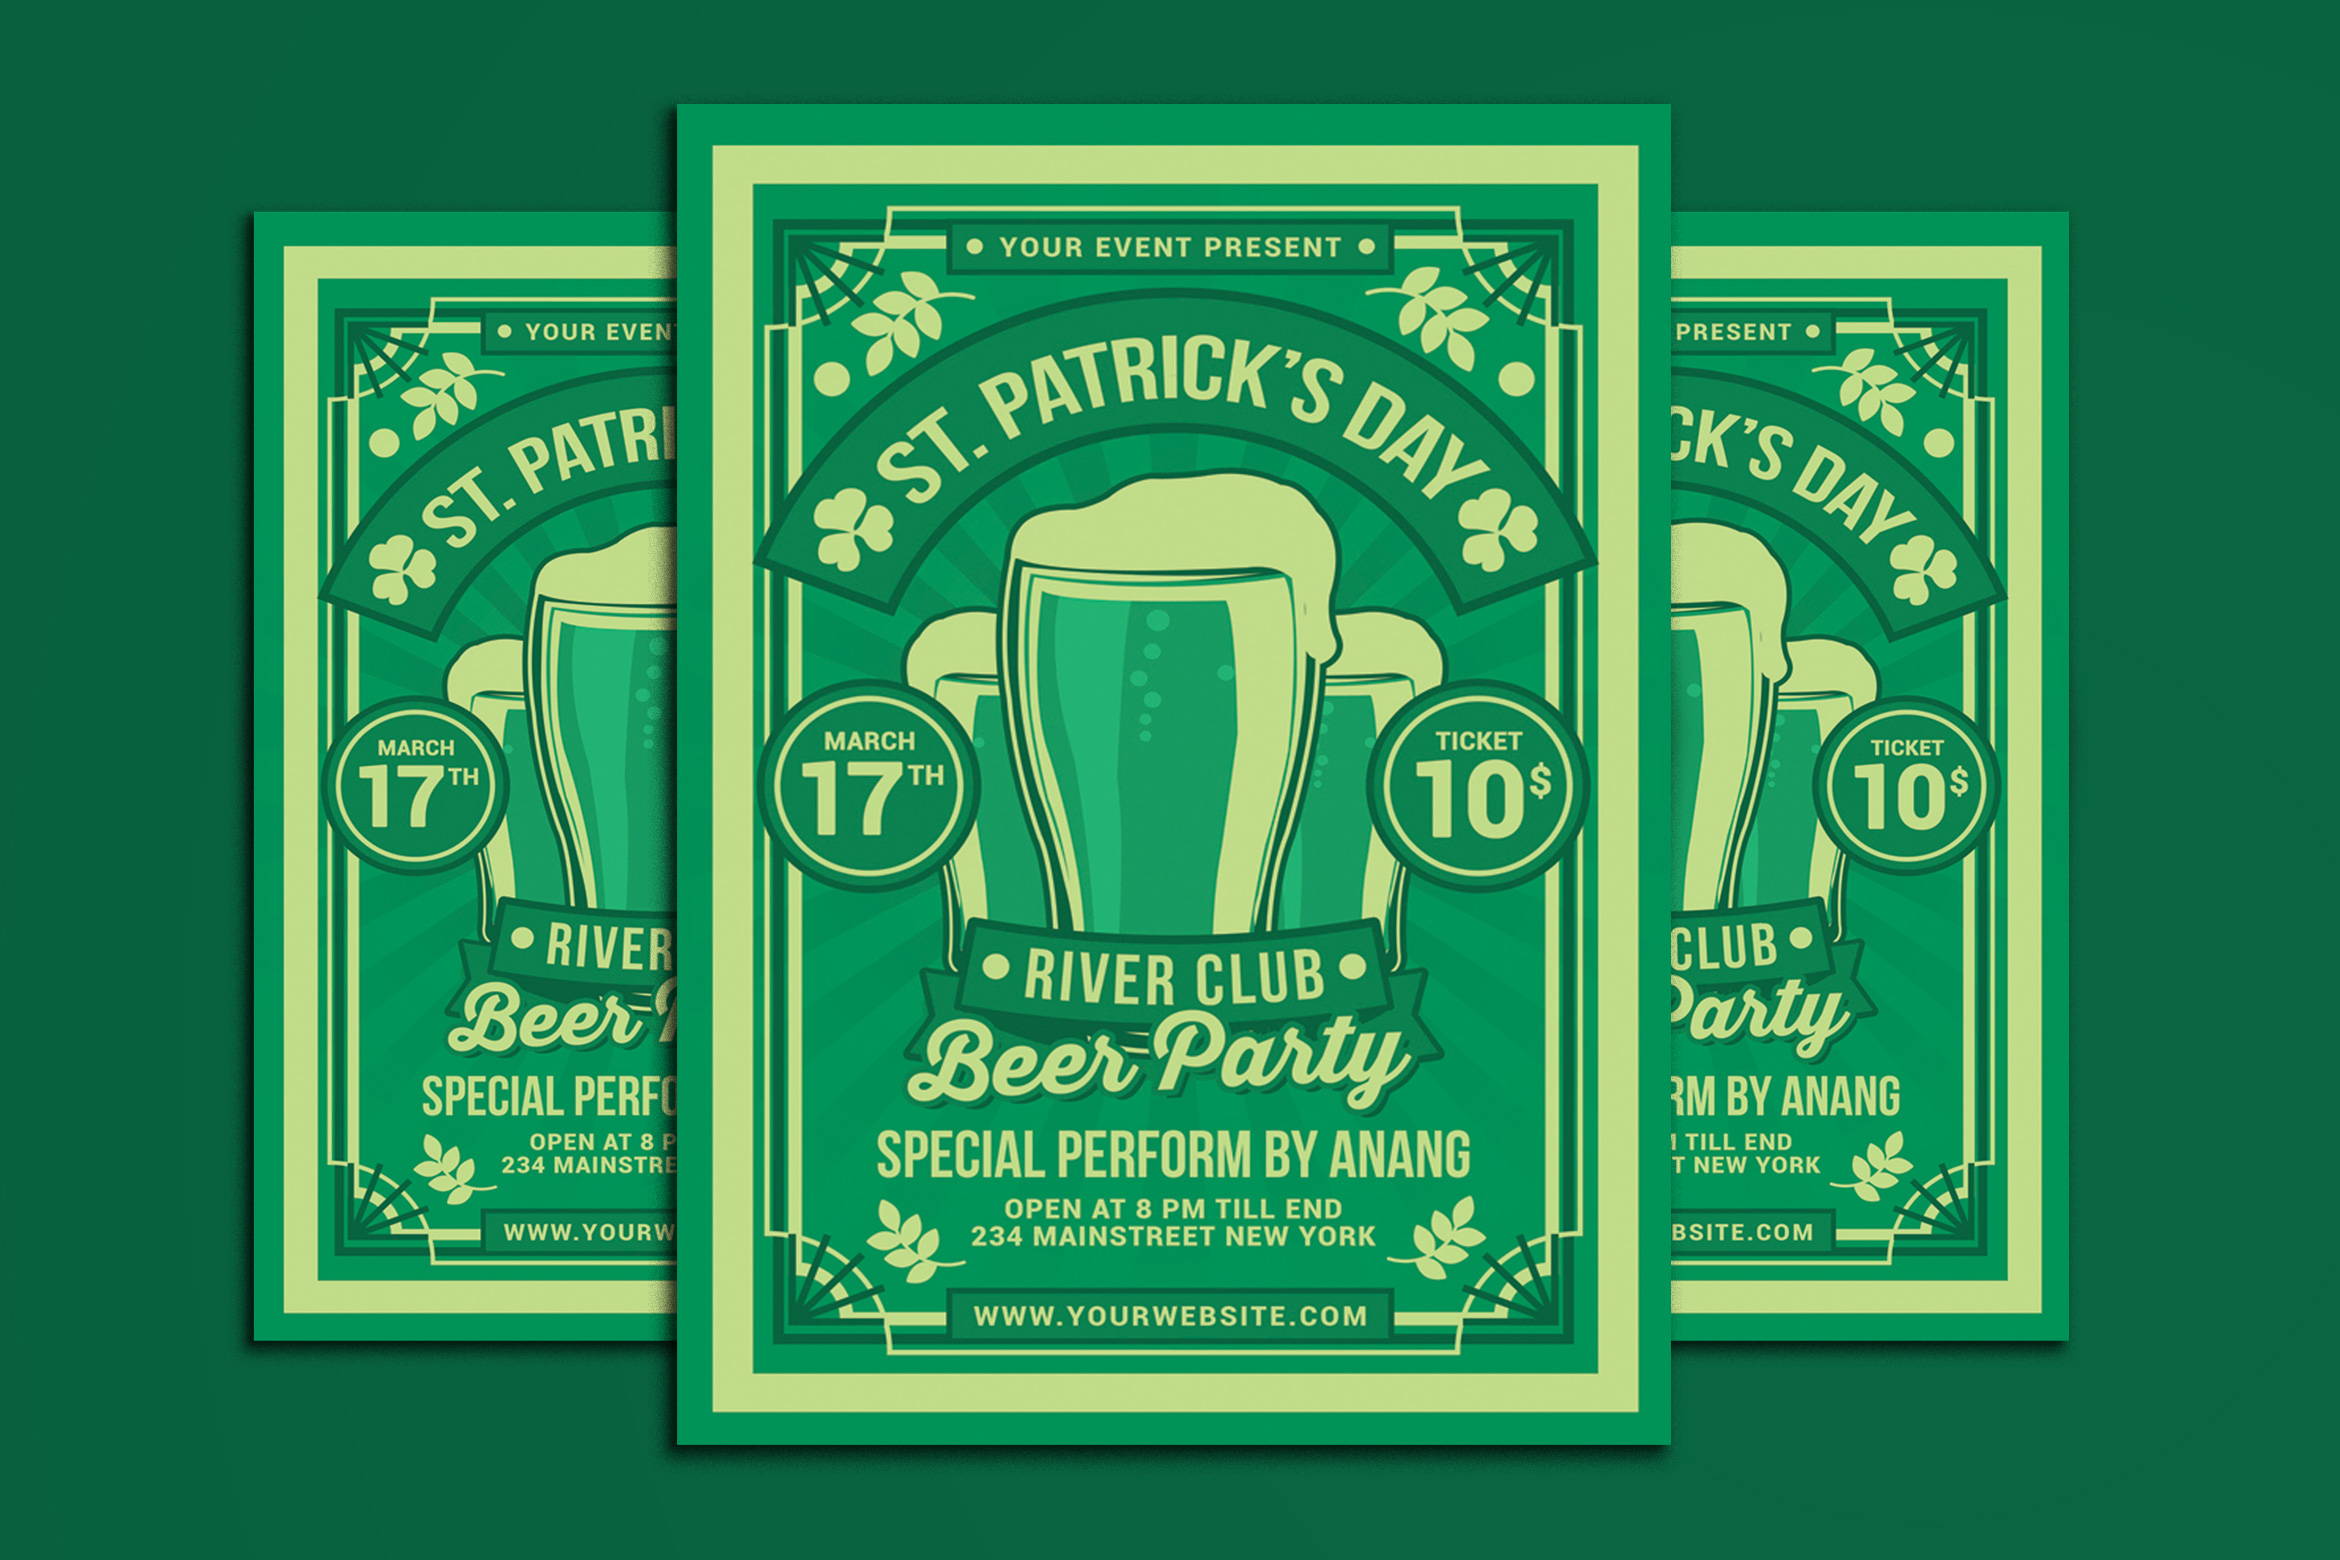 St. Patrick Day Beer Party example image 1